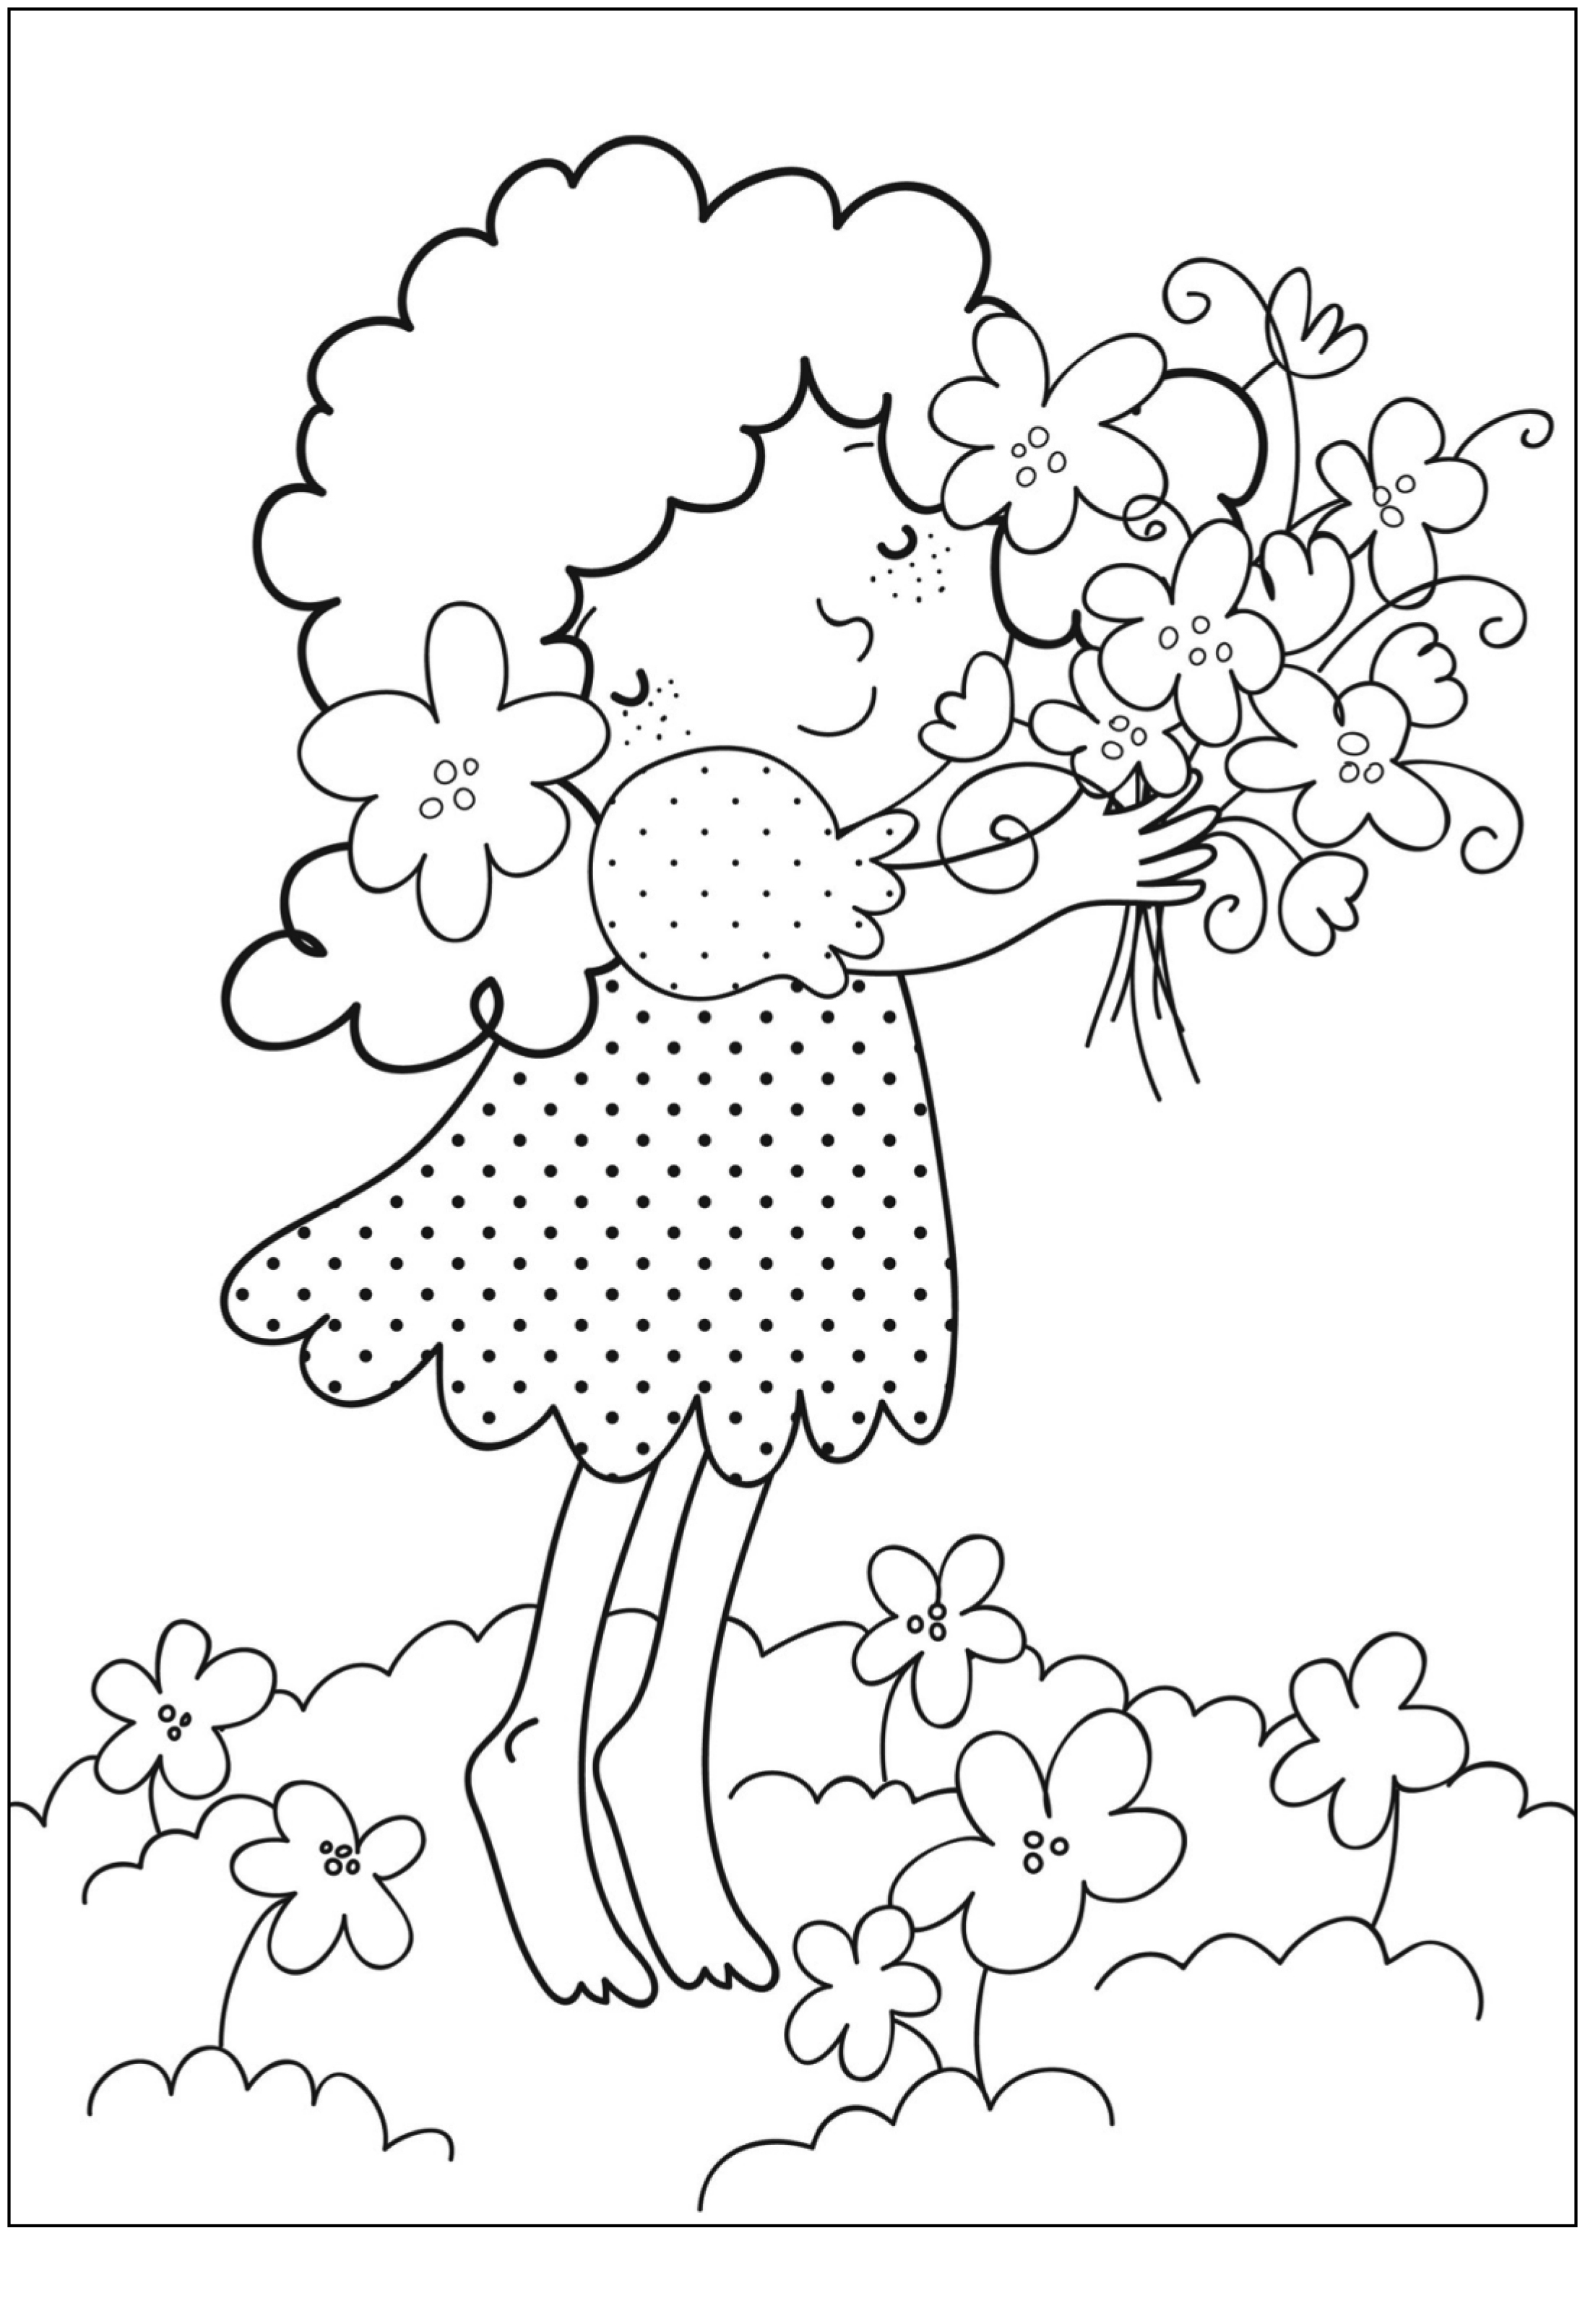 Printable flower bouquet coloring pages coloring page for Coloring pages for kids flowers